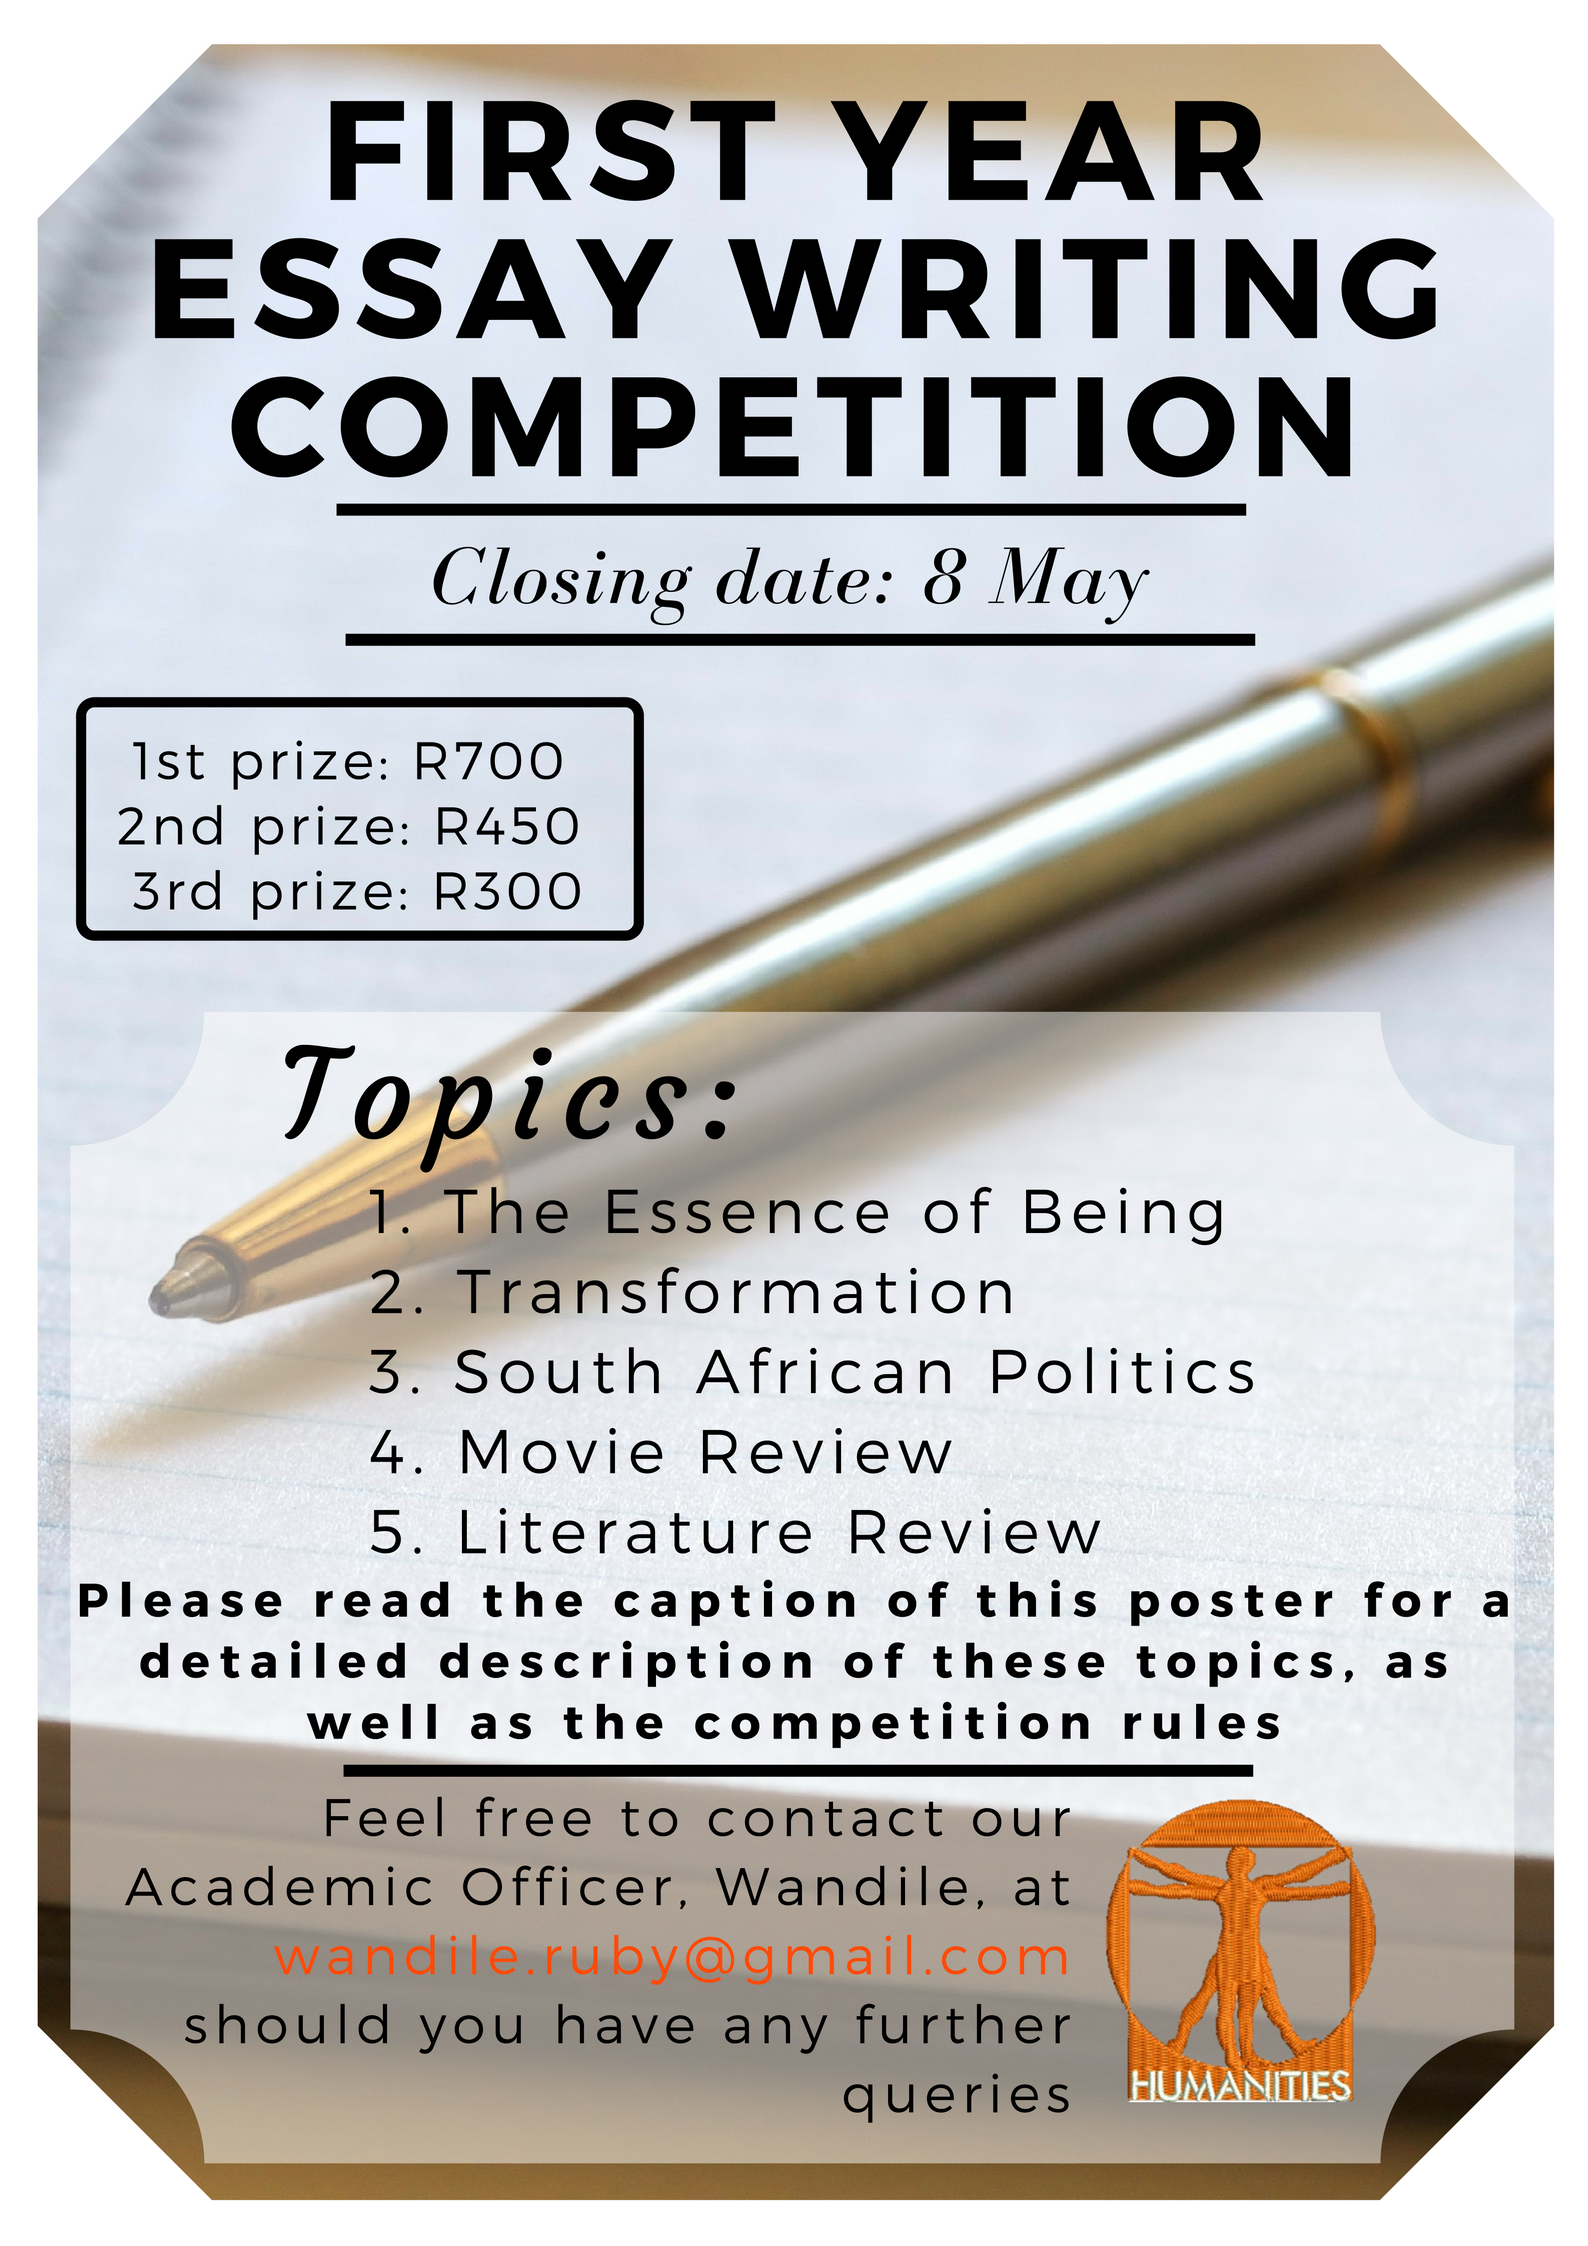 Help writing an essay competition